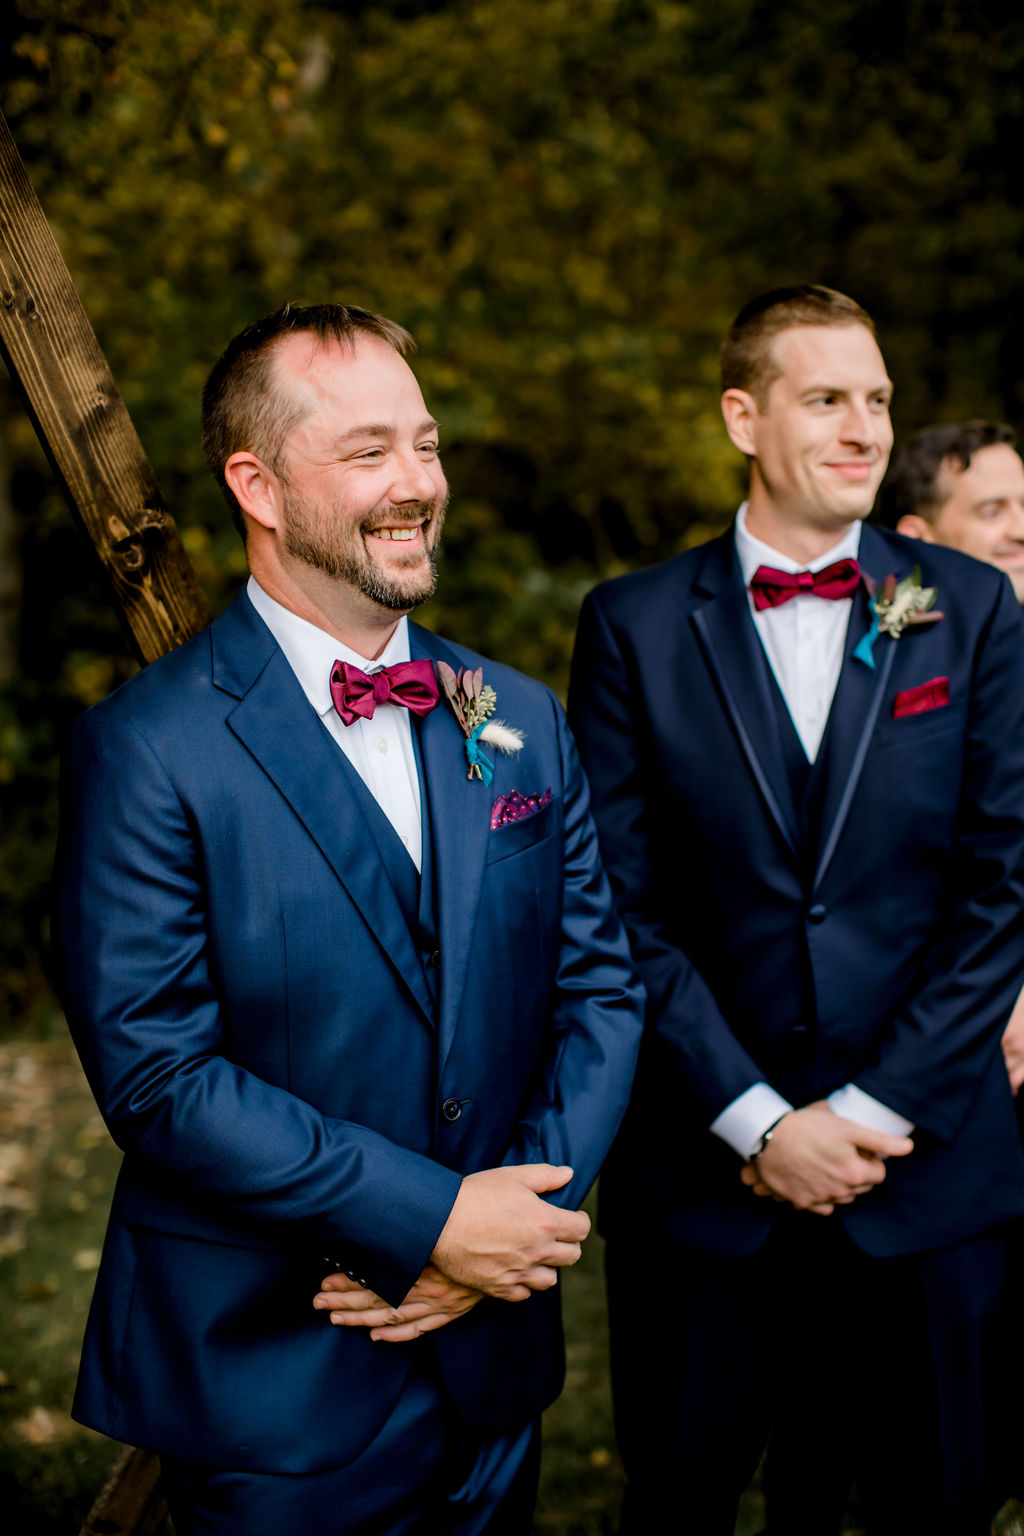 Groom smiling at his bride walking down aisle